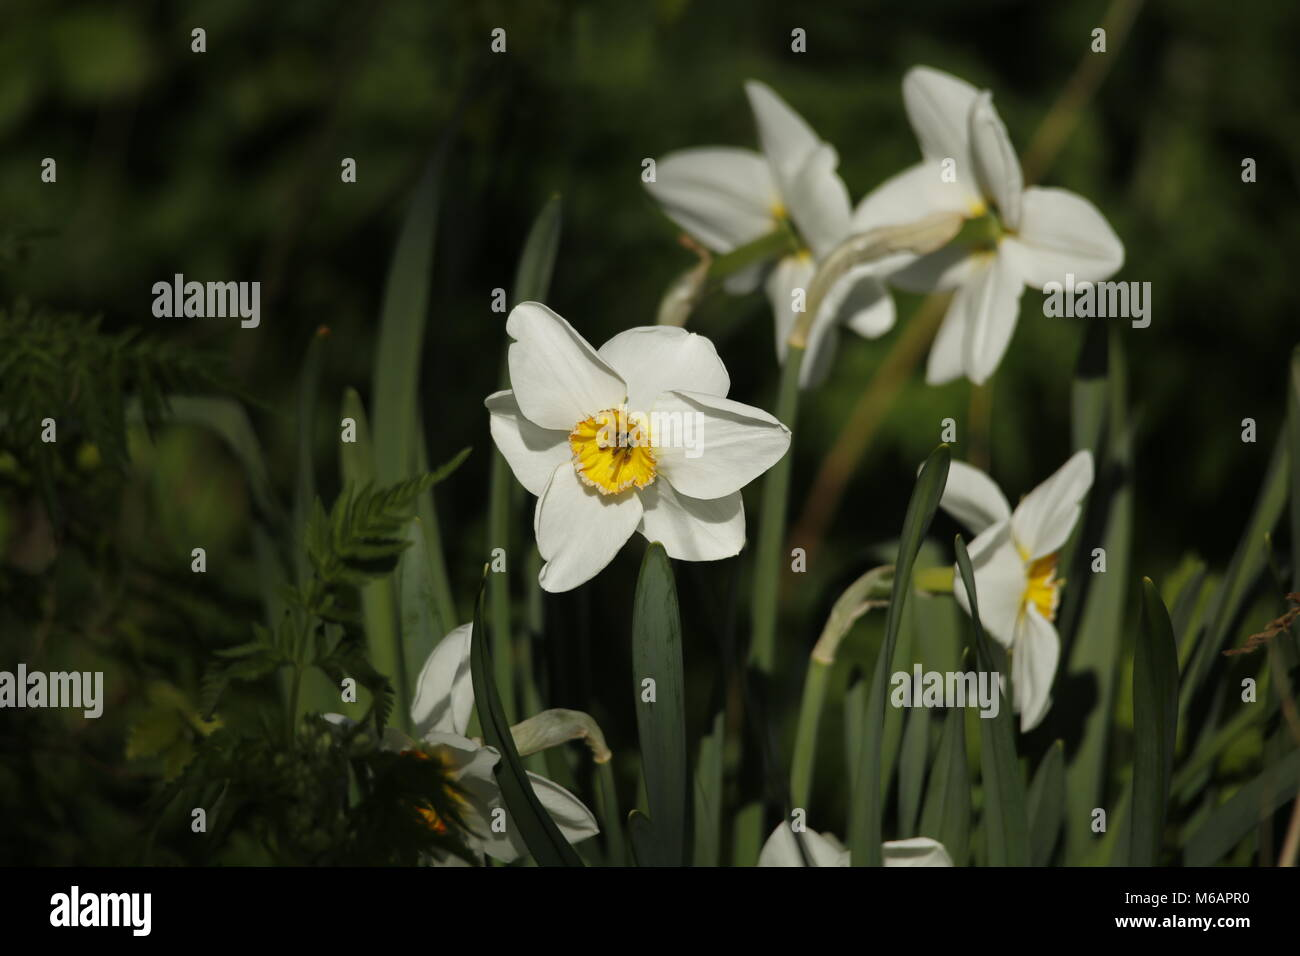 Daffodils growing in the spring - Stock Image